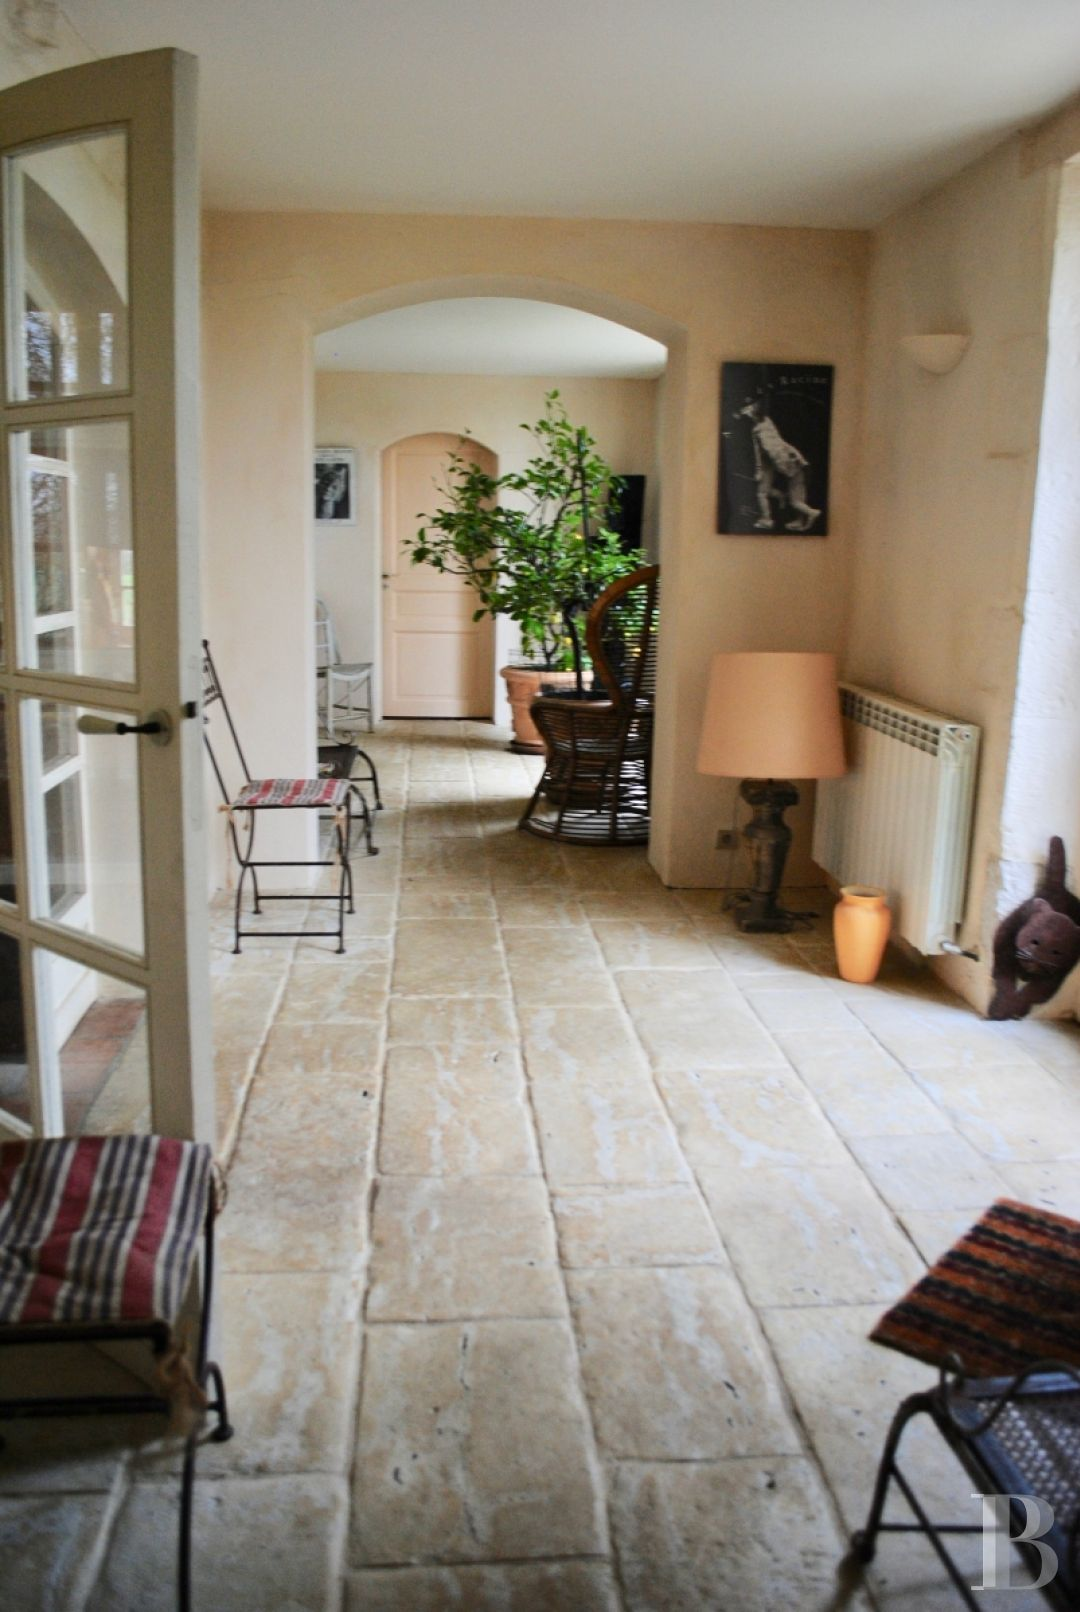 property for sale France midi pyrenees residences farms - 9 zoom